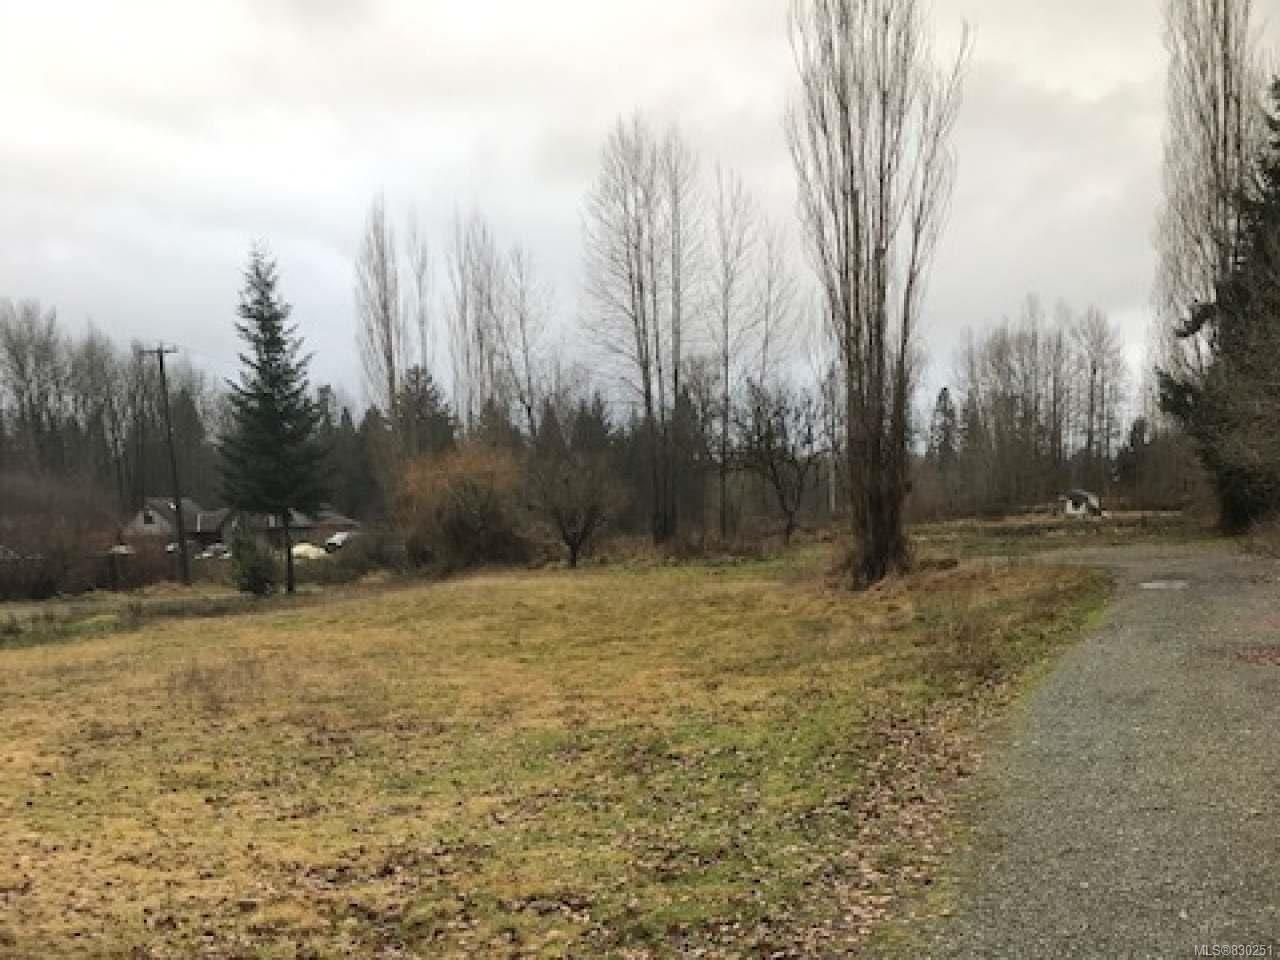 Main Photo: 4759 Headquarters Rd in COURTENAY: CV Courtenay City Land for sale (Comox Valley)  : MLS®# 830251